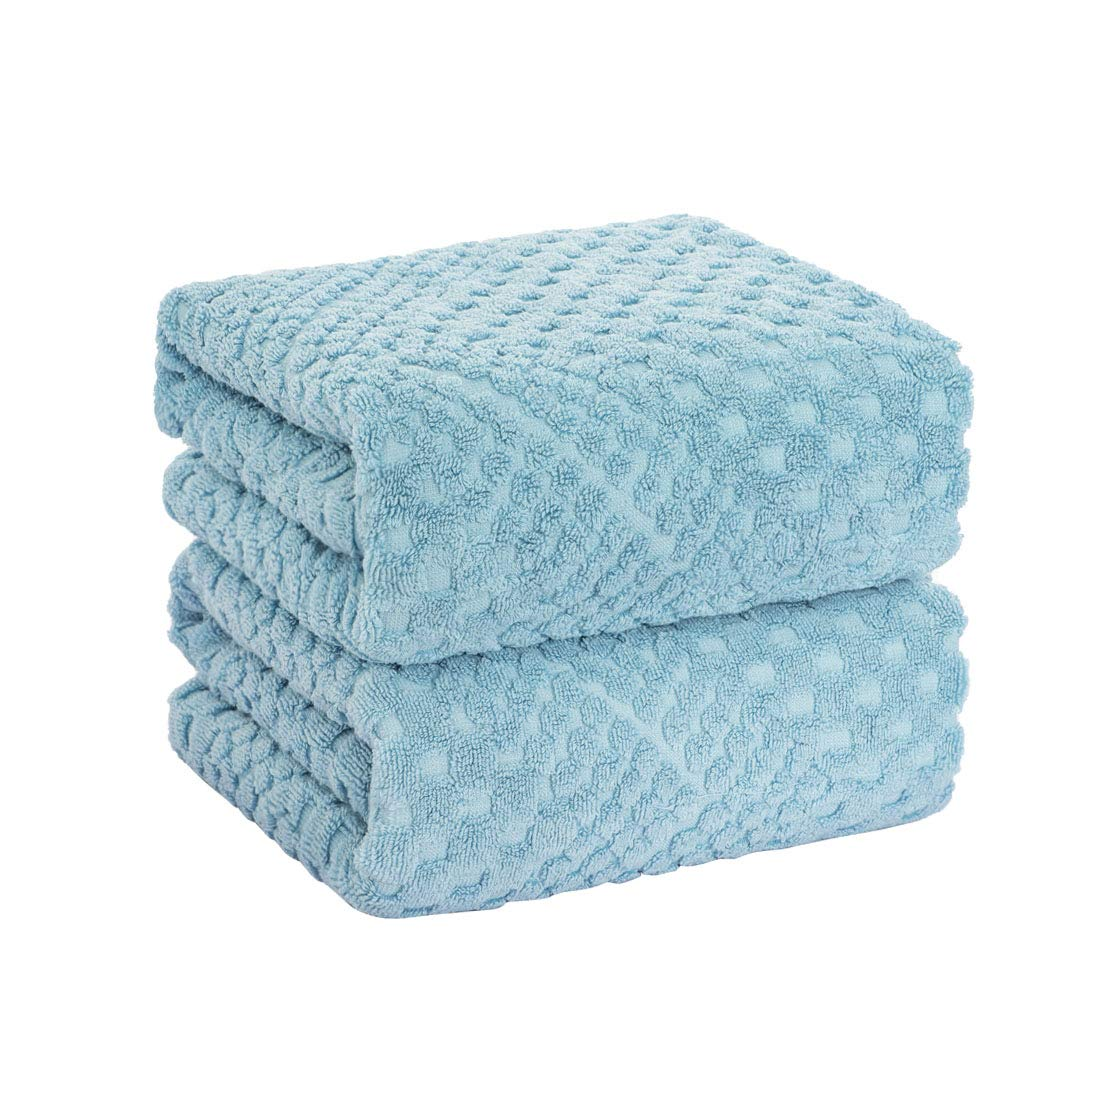 PiccoCasa 100% Cotton Jacquard-Woven Bath Towel Set 27 x 54 Inches Soft Thick and Absorbant Bathroom Towels Blue